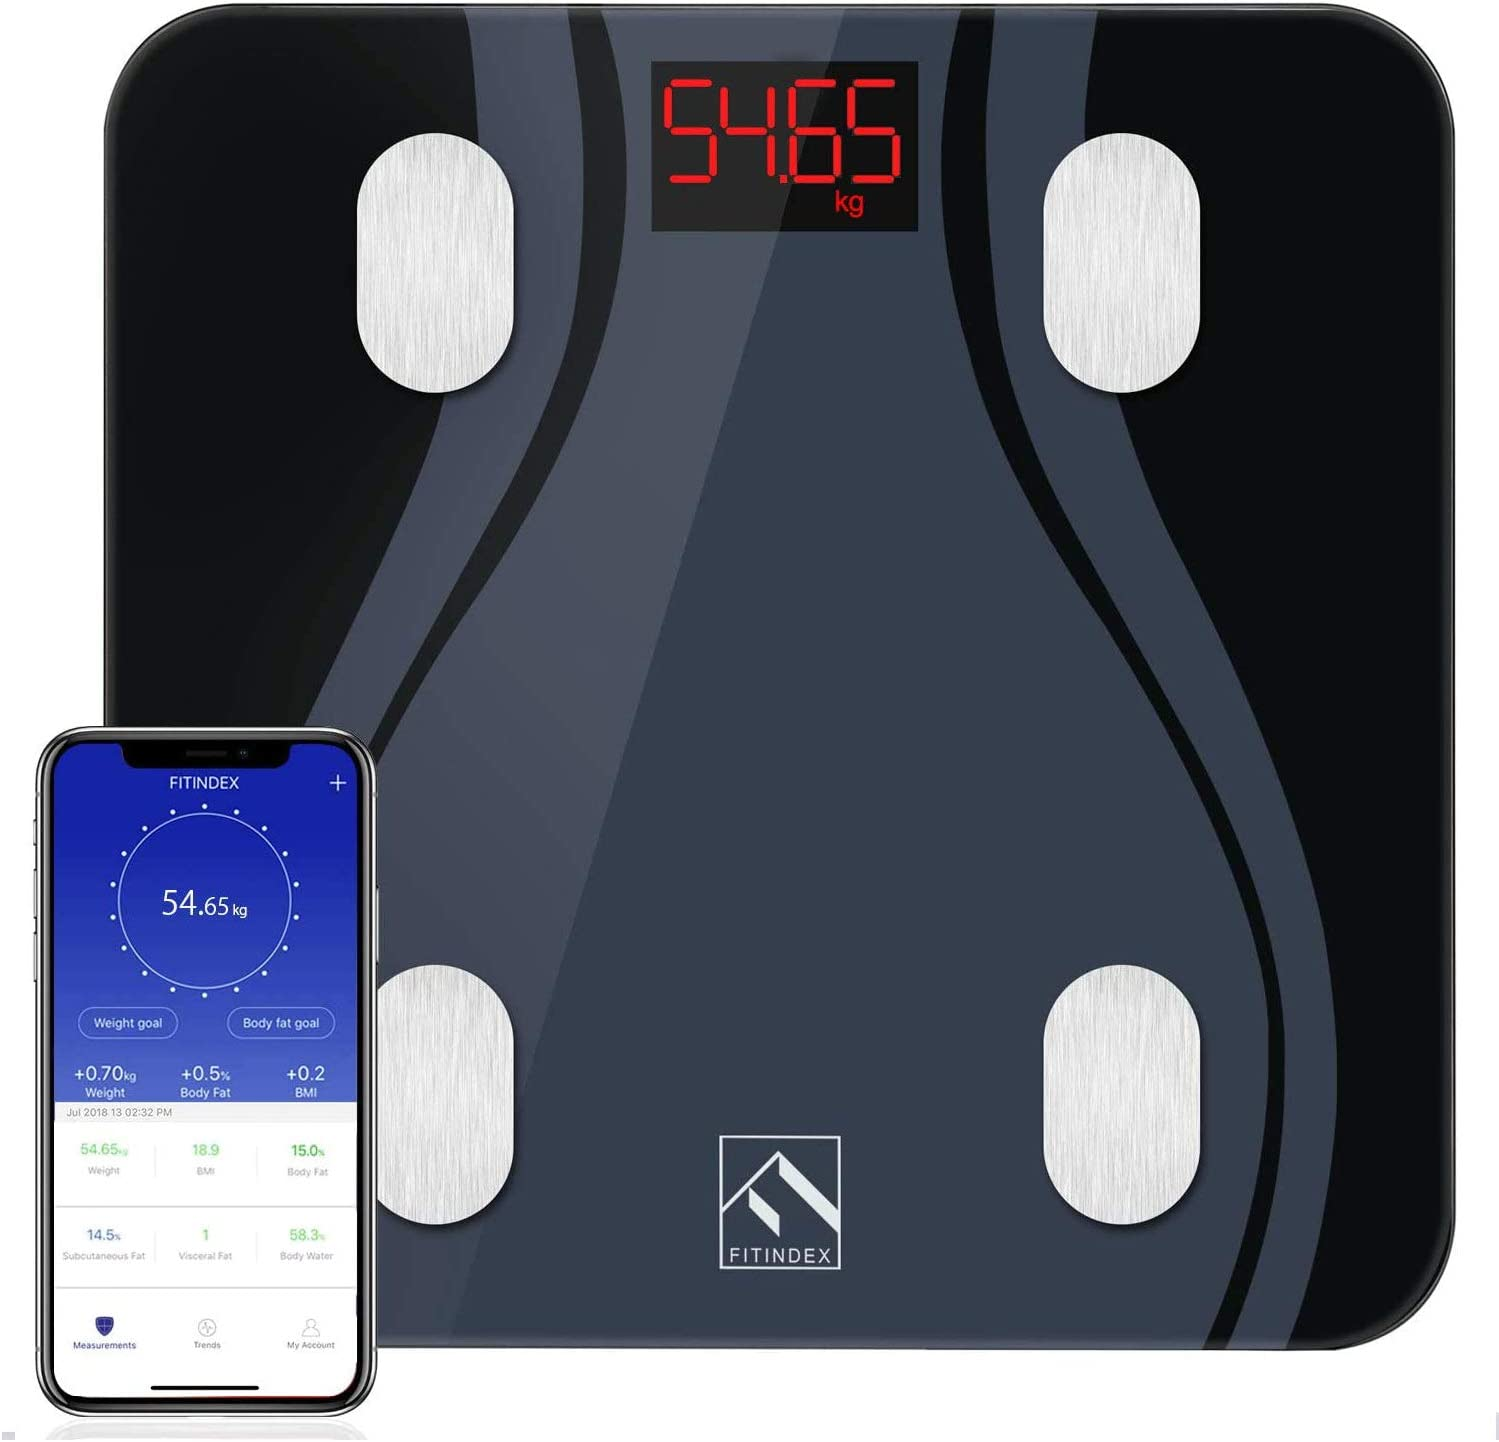 Amazon.com: FITINDEX Smart Bluetooth Body Fat Scale with Upgraded App, High Precision Bathroom Scales Digital Weight and Body Fat Body Composition Monitor, 396lb/180kg, Black: Health & Personal Care